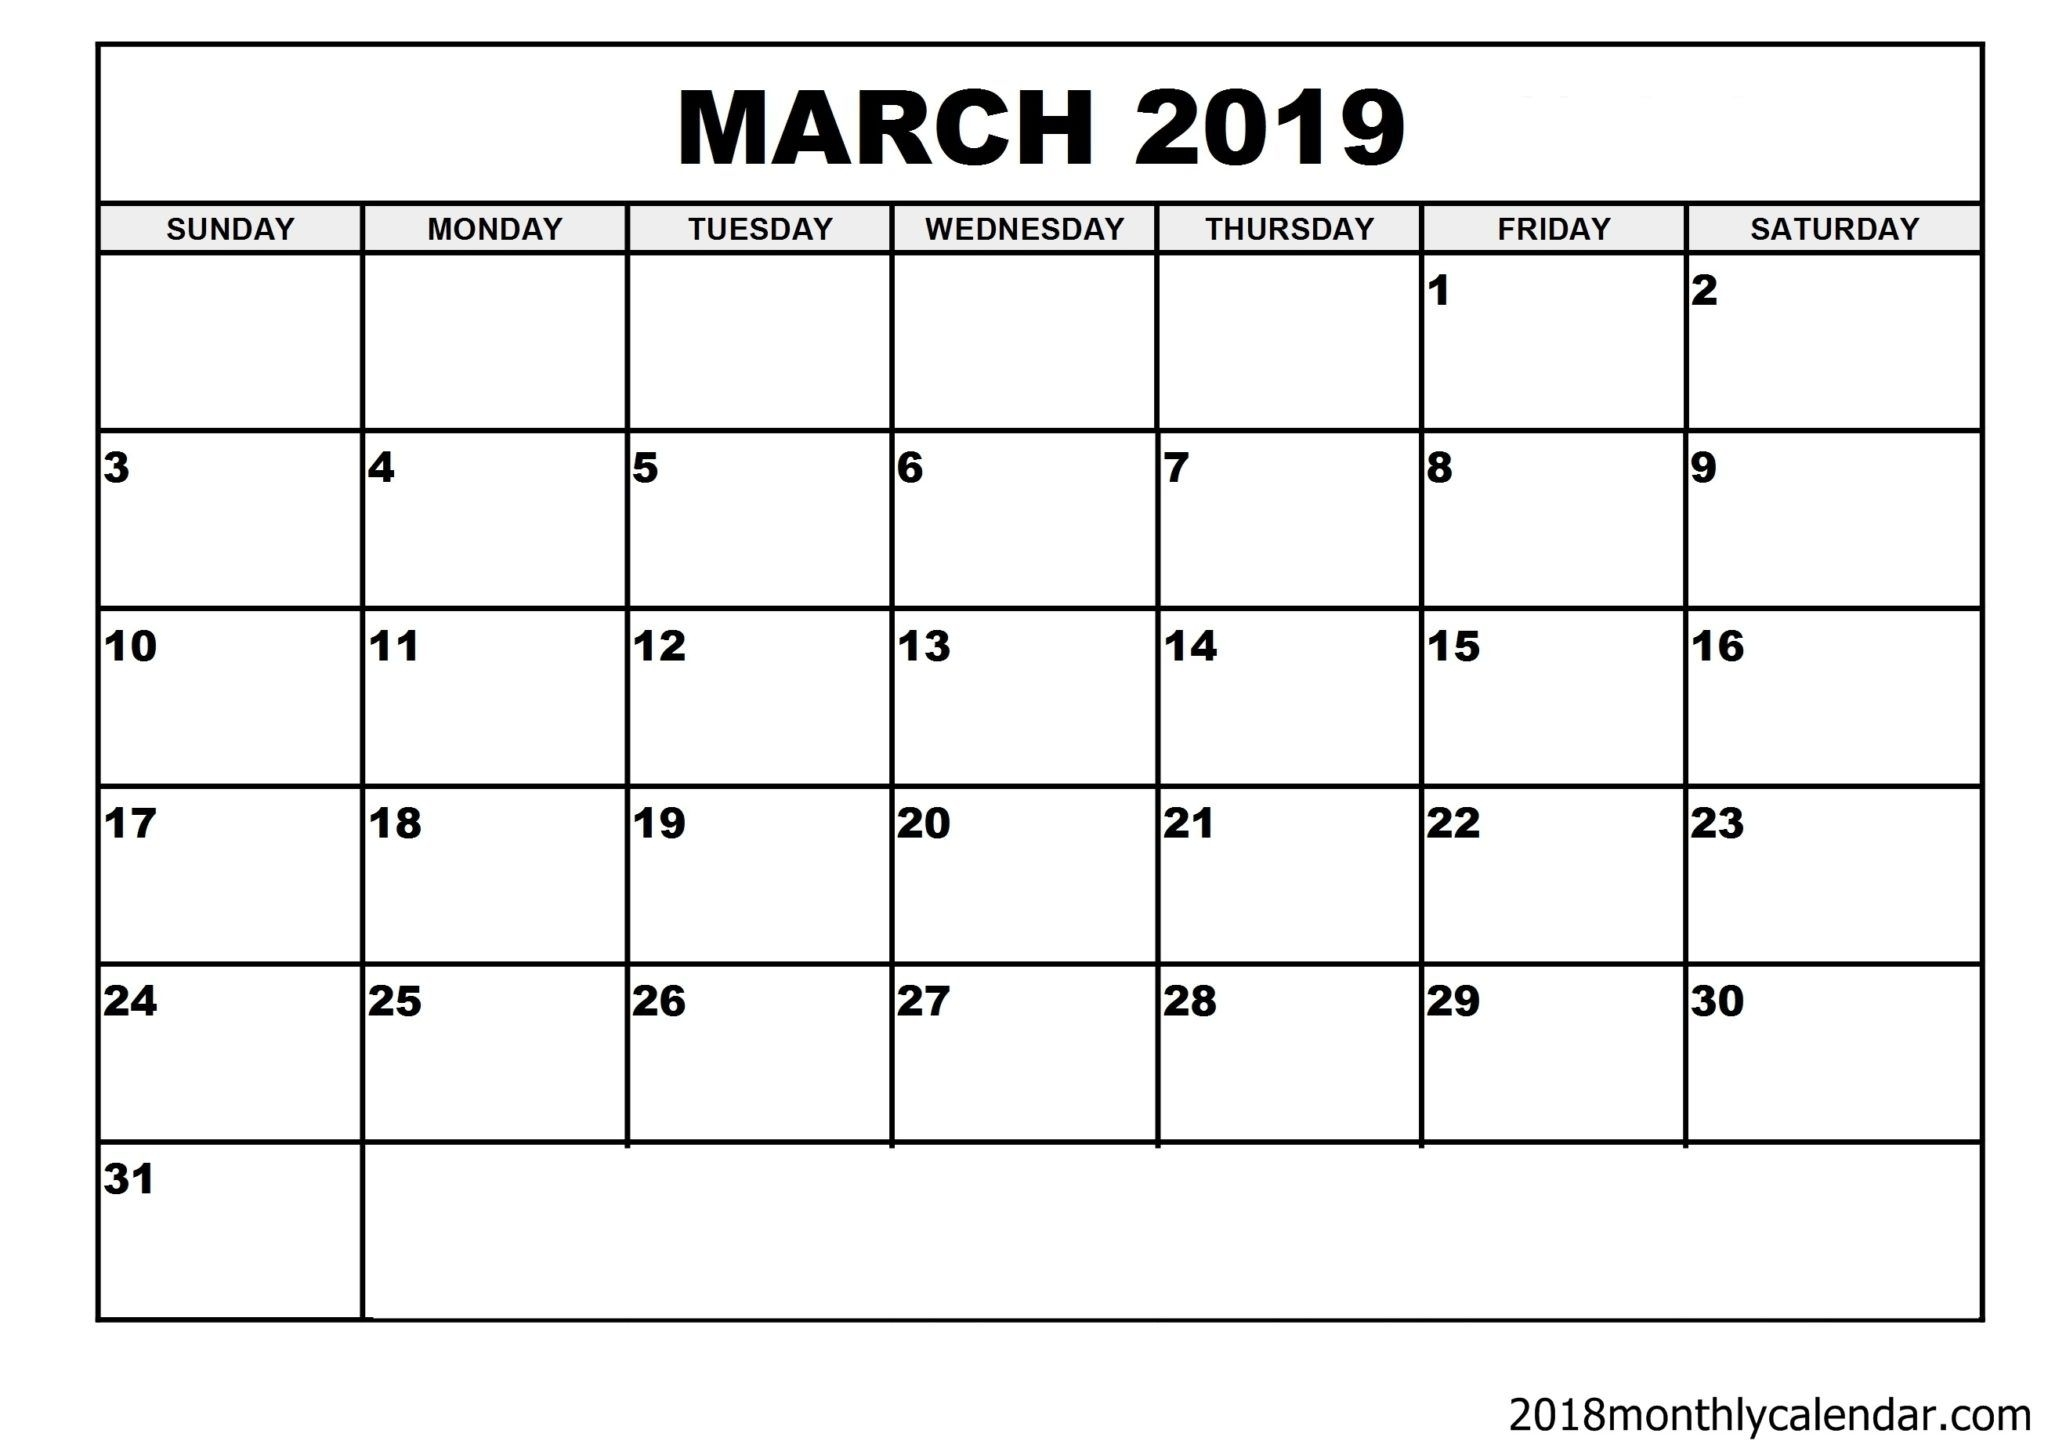 Download March 2019 Calendar – Blank Template - Editable Calendar regarding Free Editable Monthly Calendar Printable